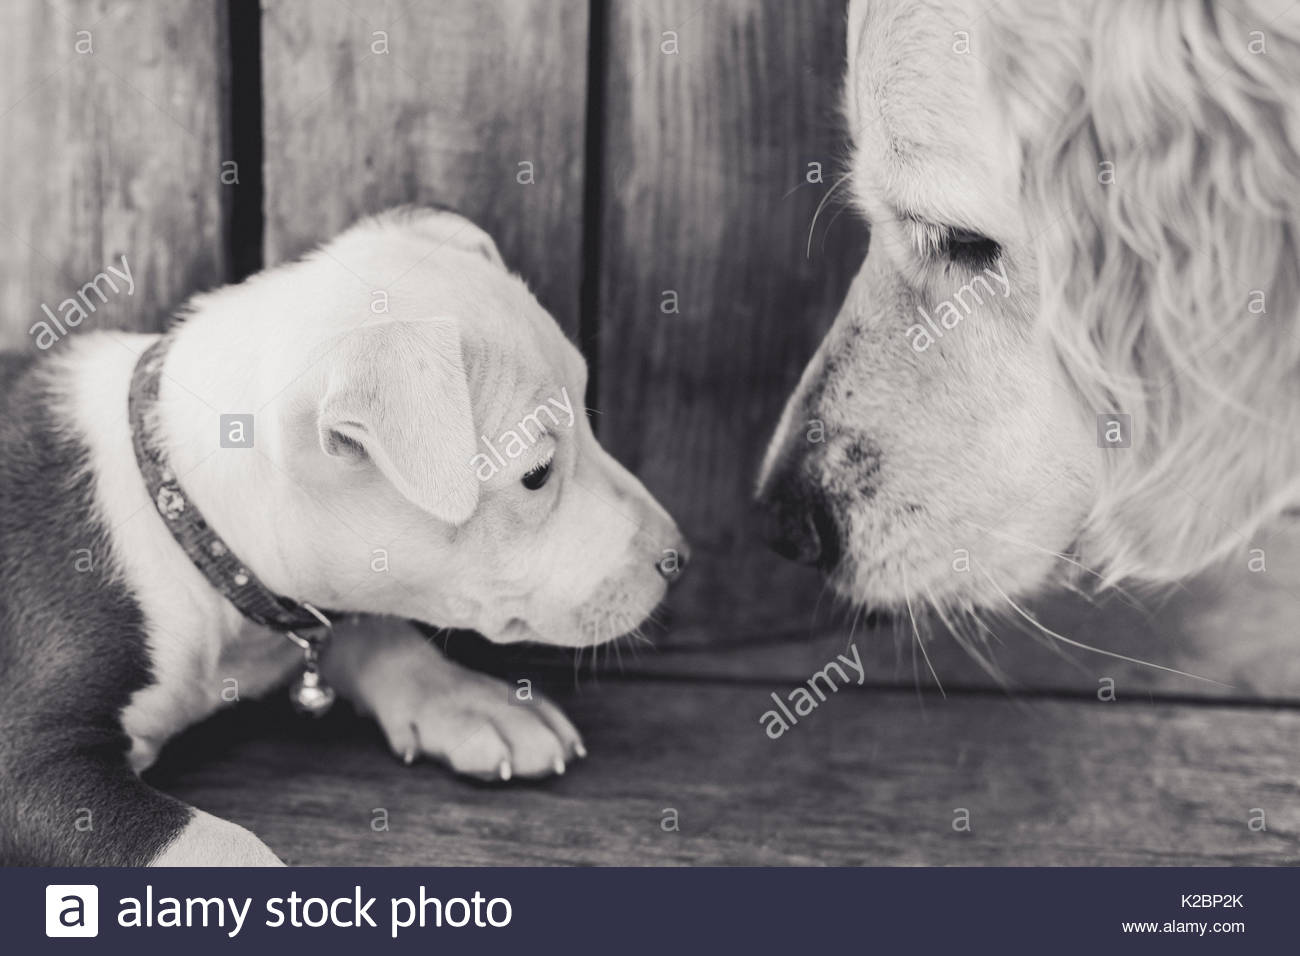 puppy faces to face with a larger mature dog - Stock Image